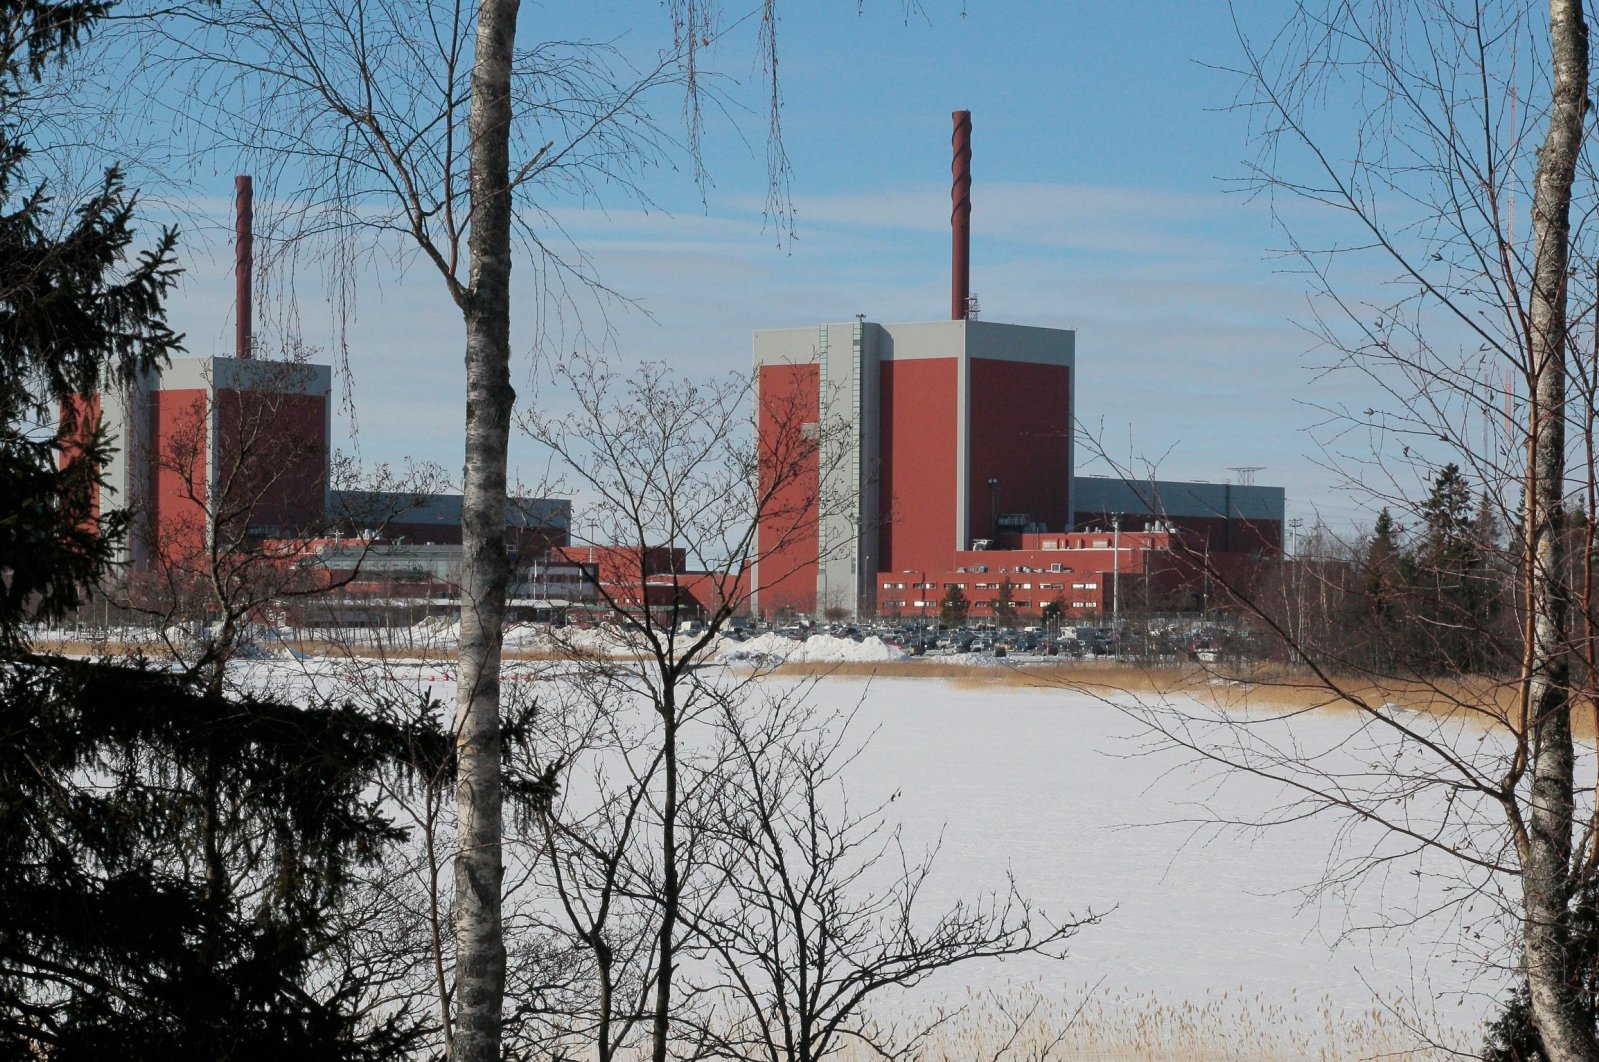 Nuclear power plants Olkiluoto 1 (L) and Olkiluoto 2 in Olkiluoto are shown in this file photo, southwestern Finland, March 15, 2010. (AFP Photo)